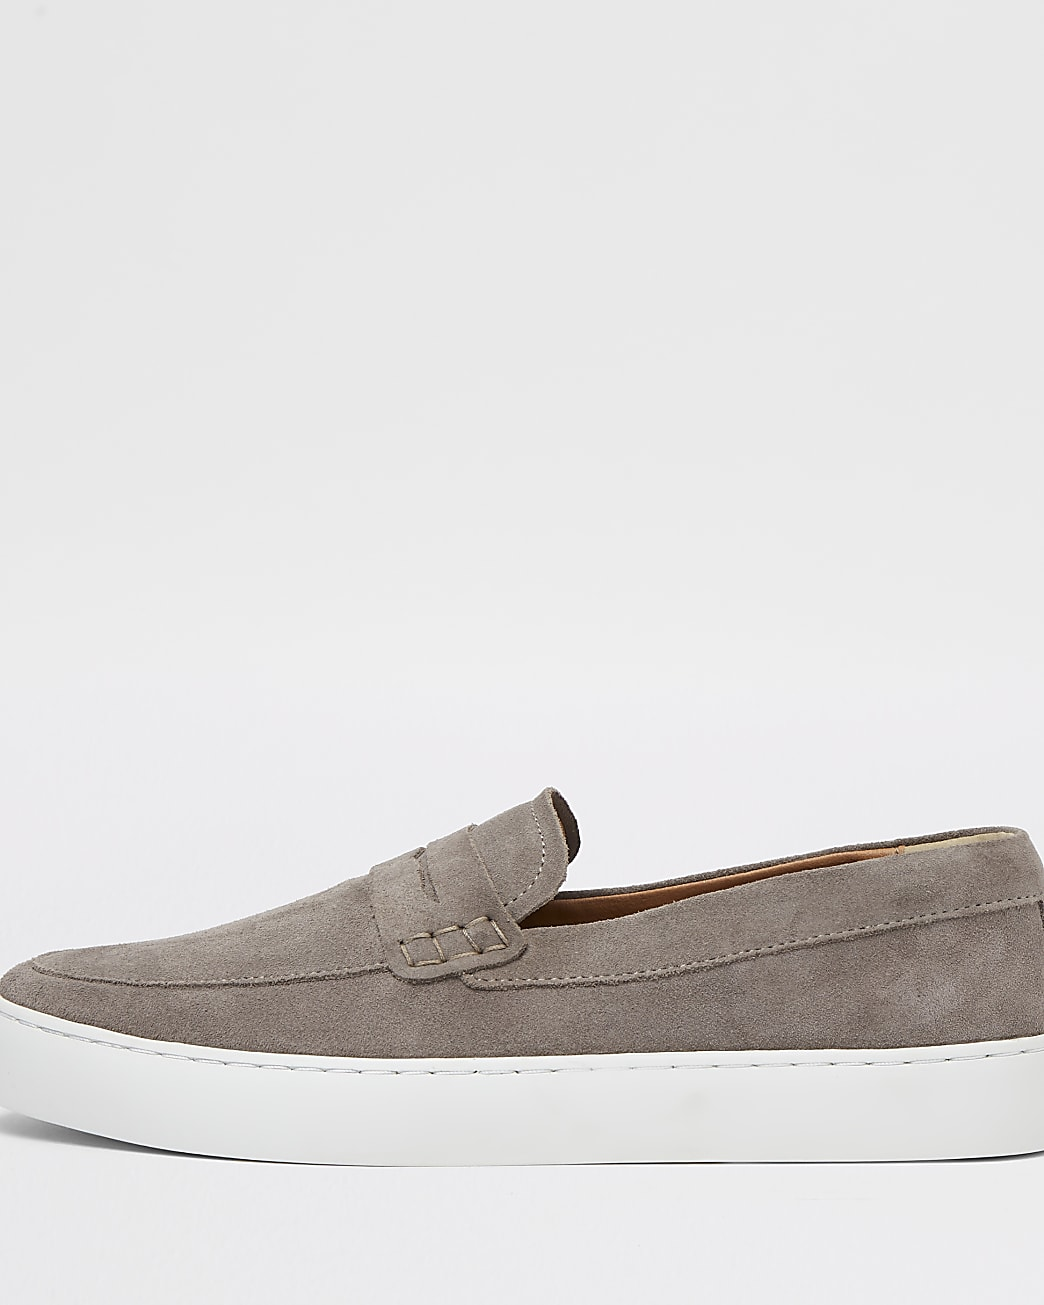 Grey suede cupsole loafer